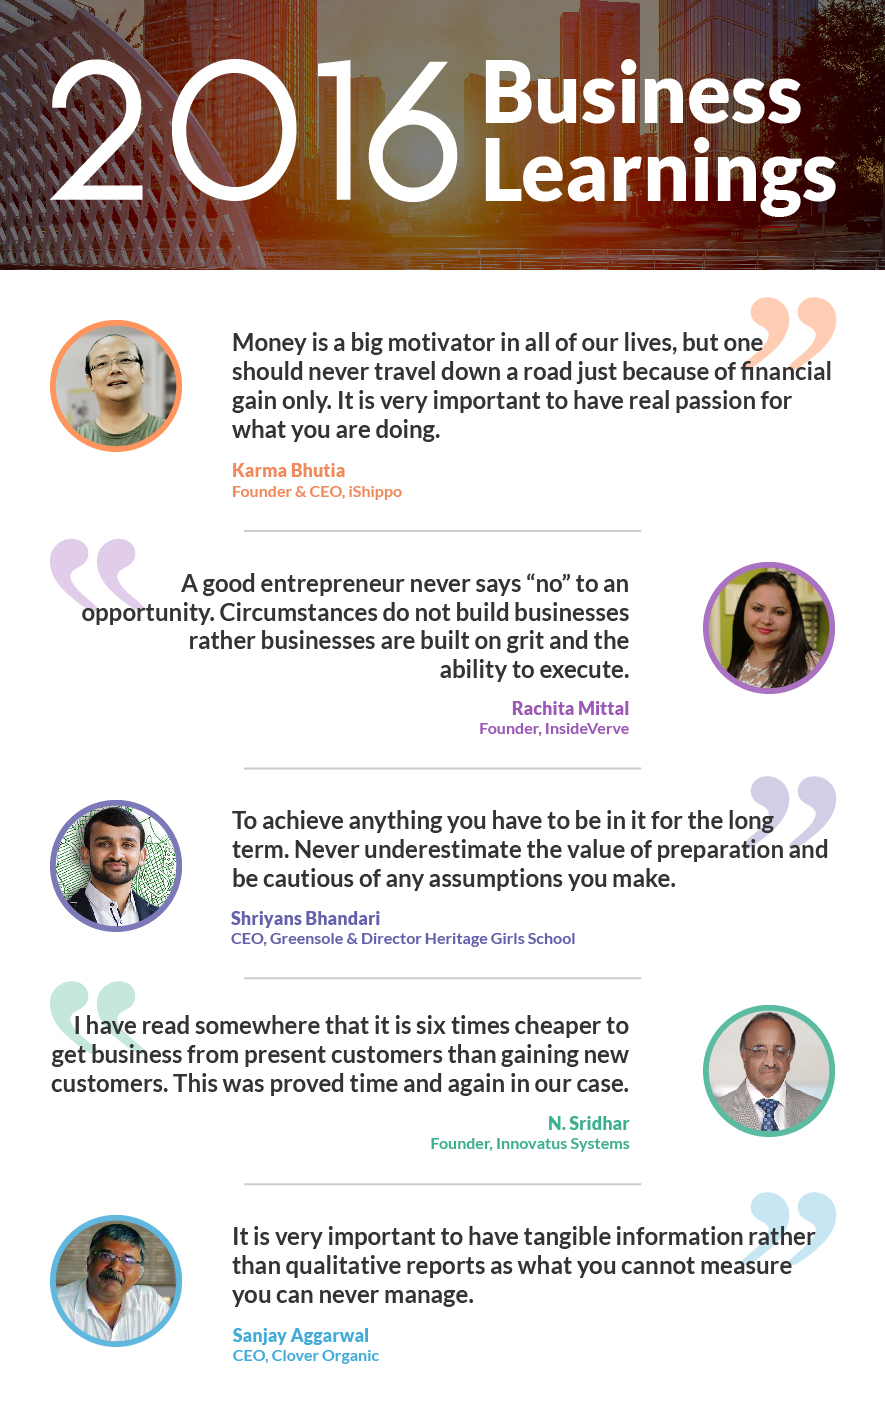 Entrepreneurs share their learnings from the year that was